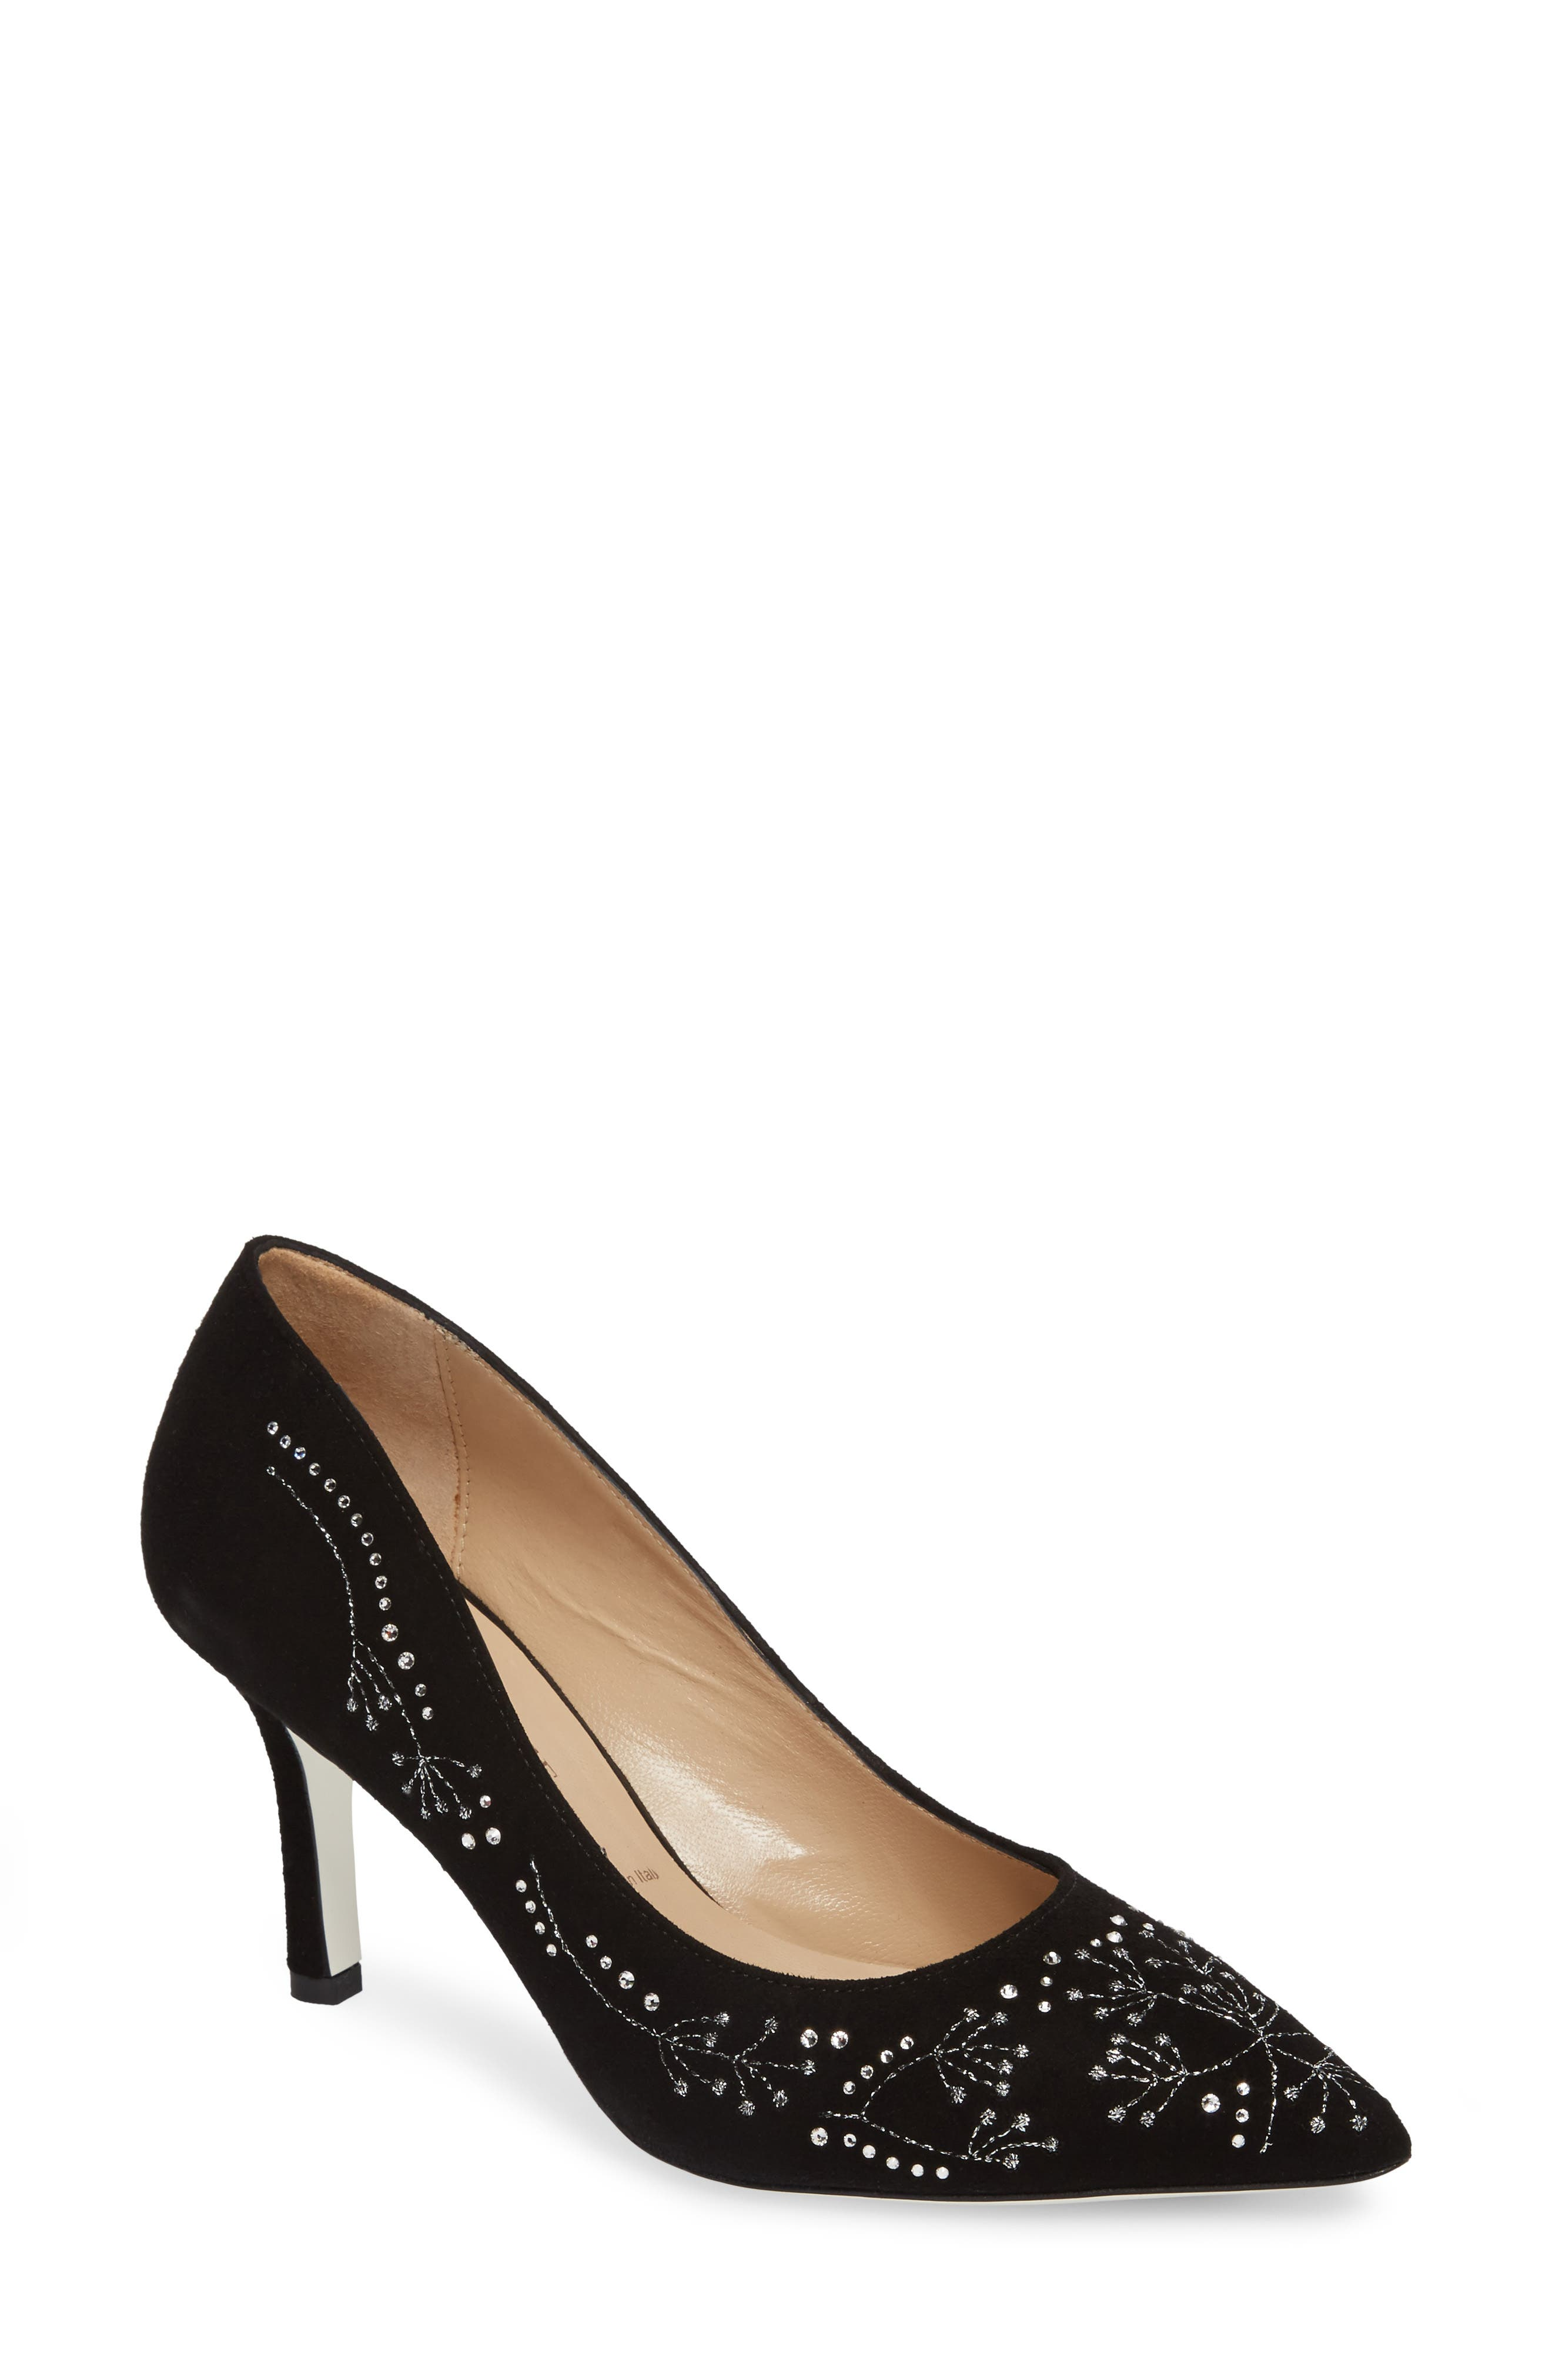 Carla Crystal Embellished Pump,                             Main thumbnail 1, color,                             001